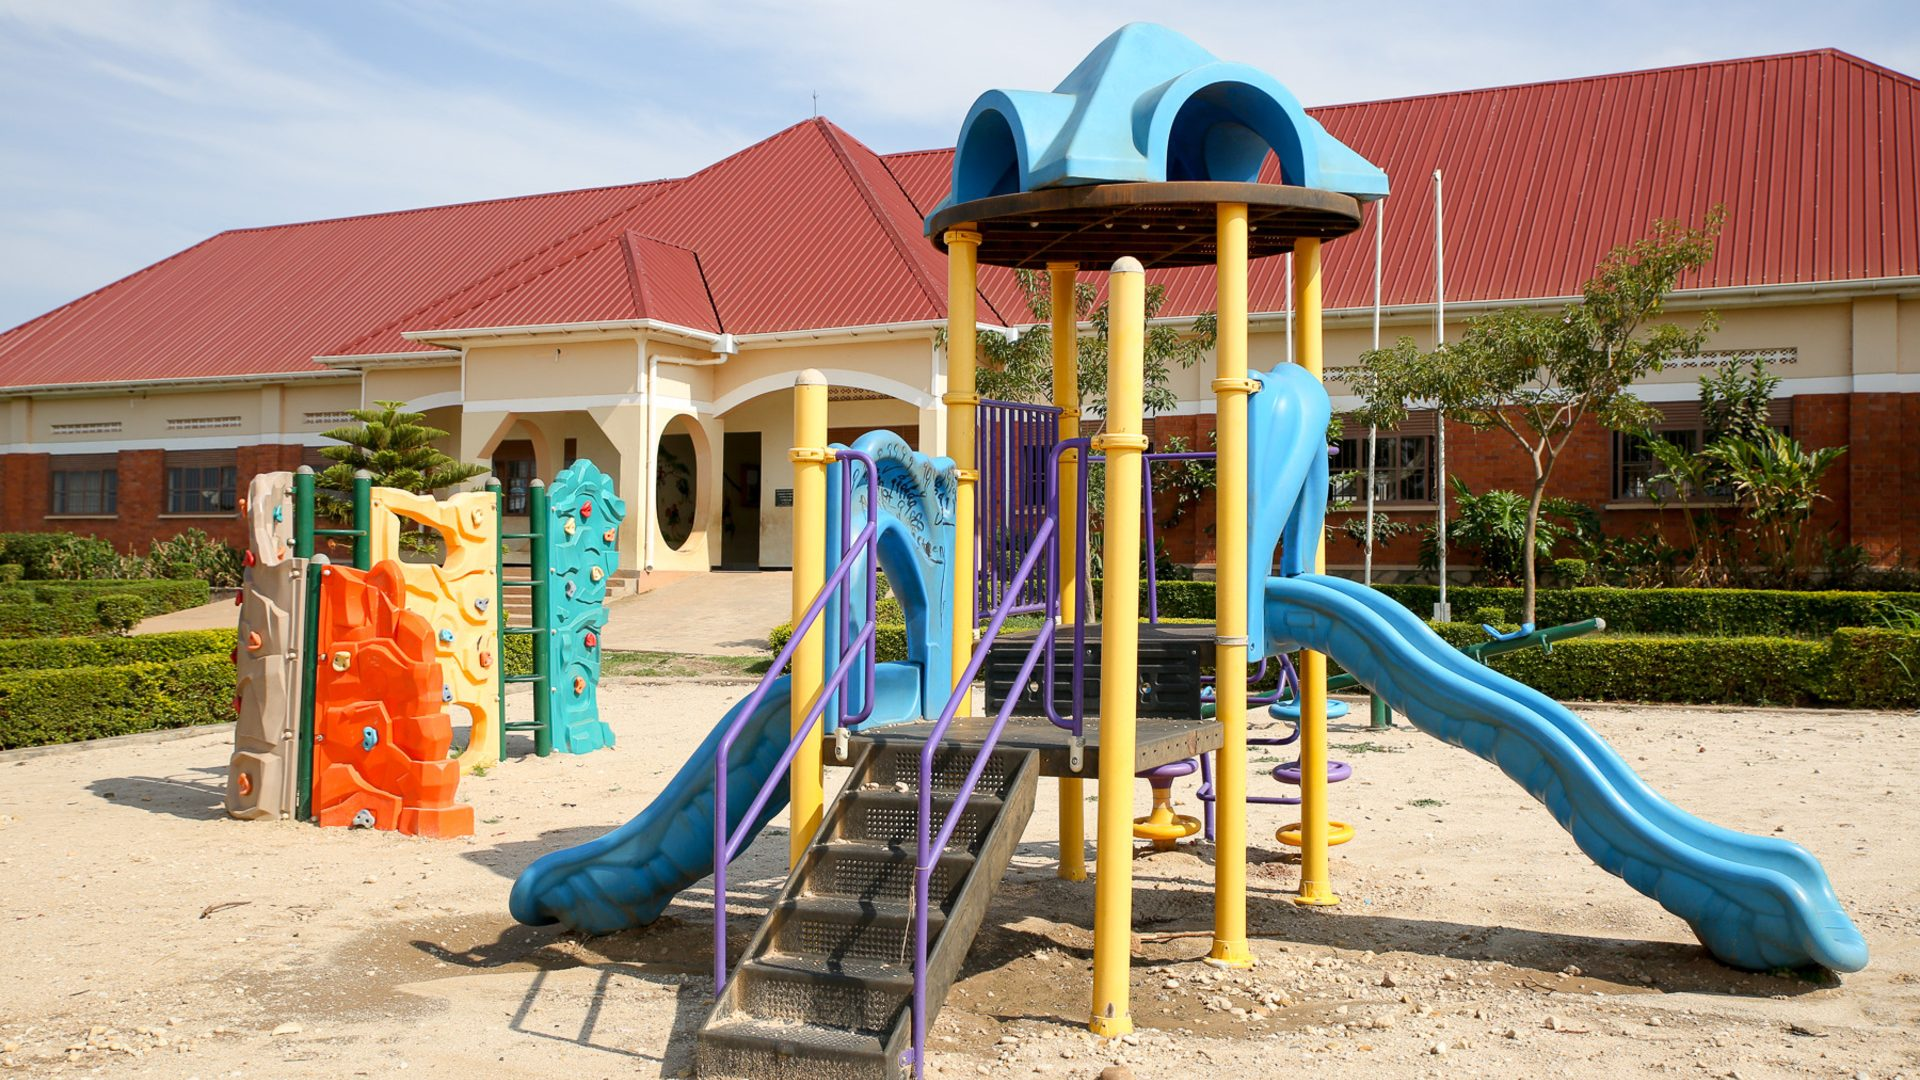 Playground at Mannya Kindergarten